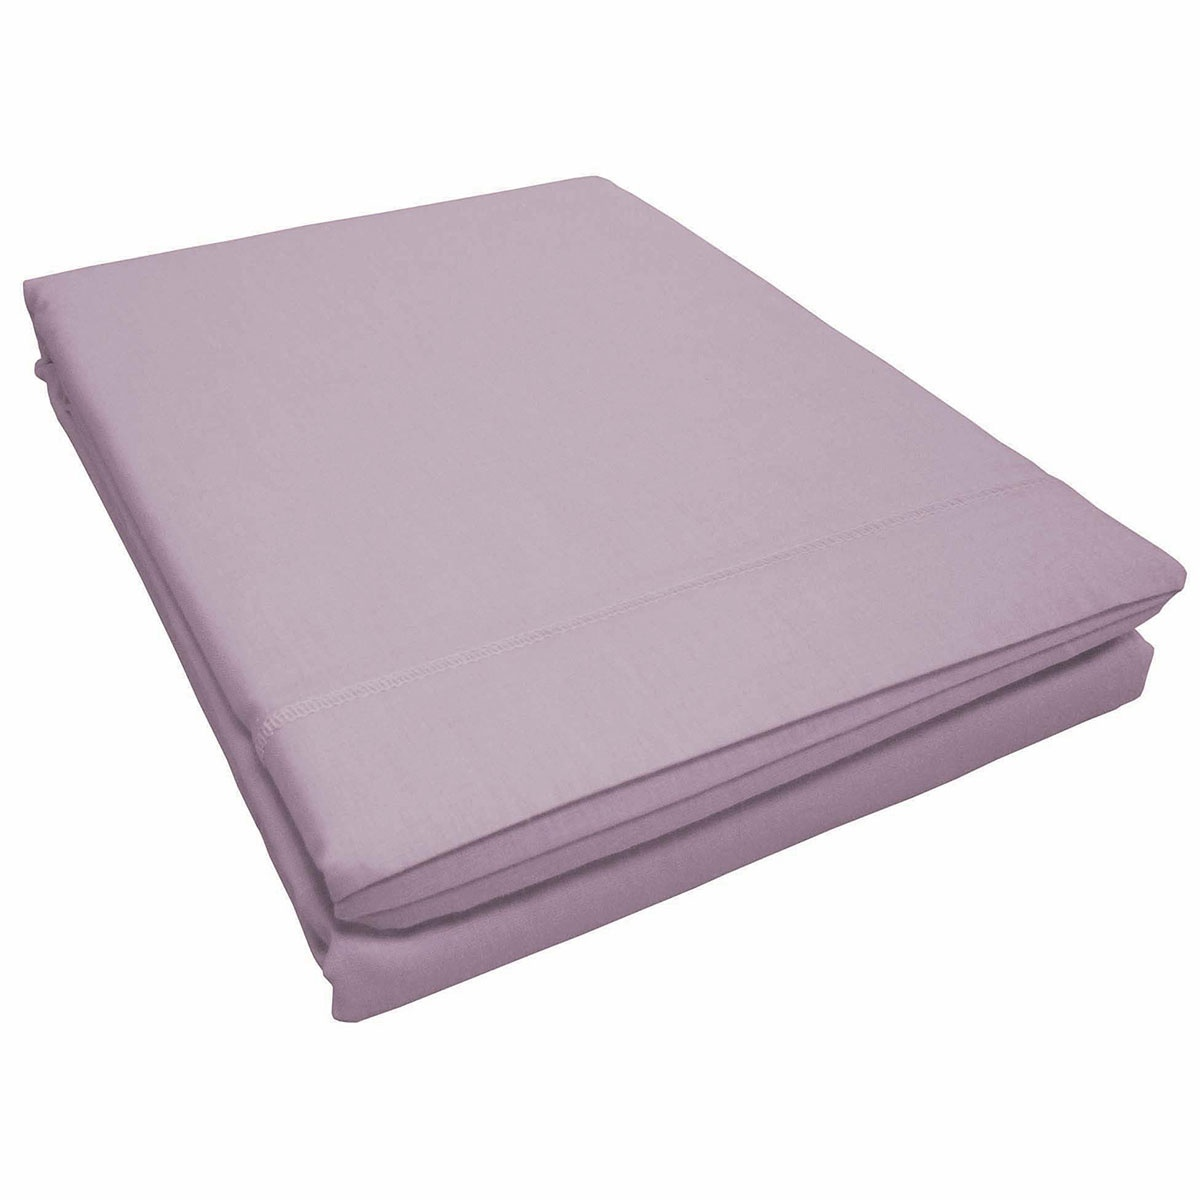 Drap plat uni avec point bourdon